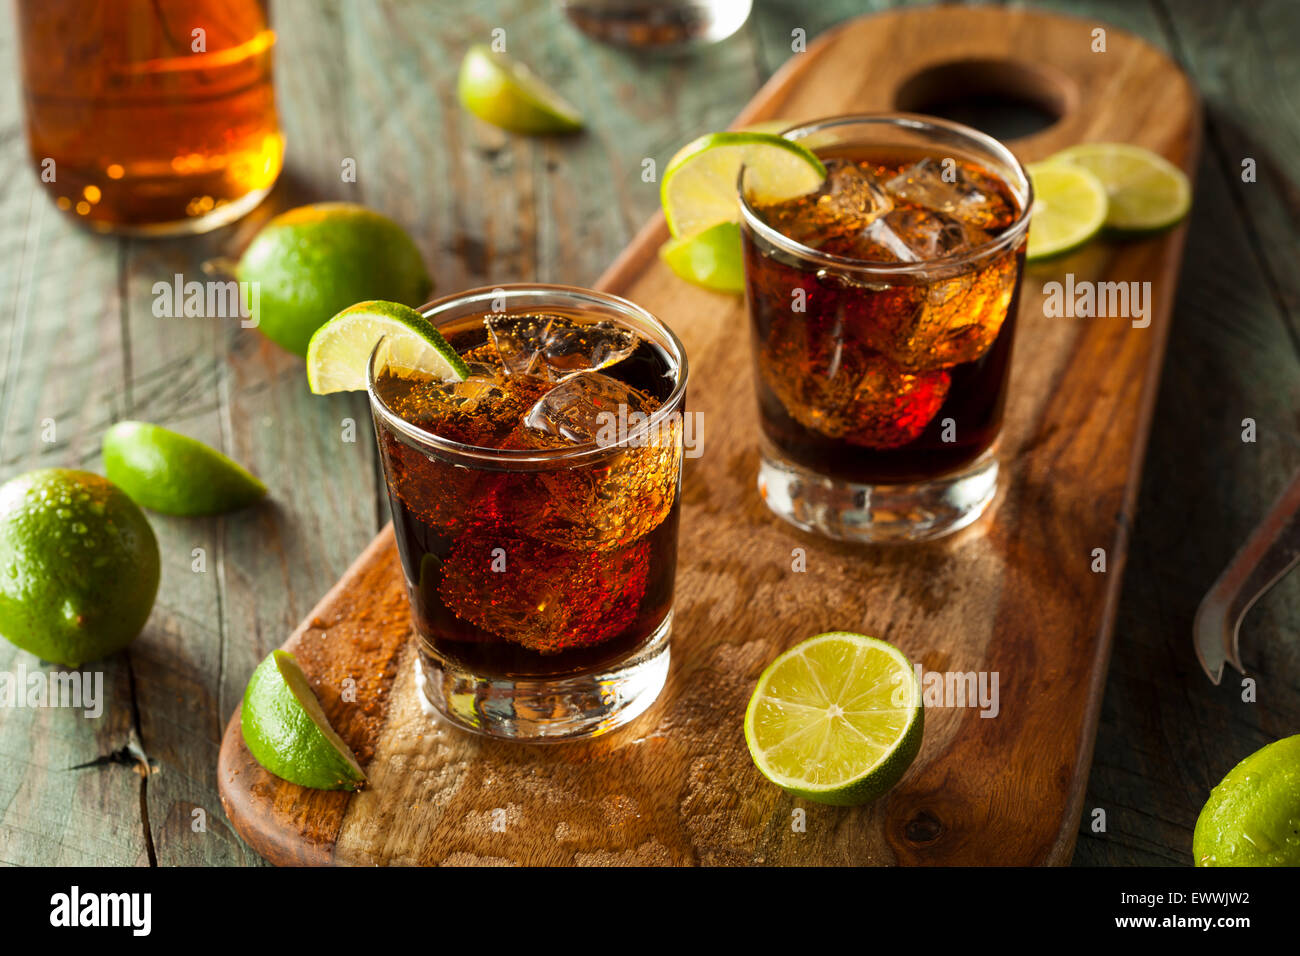 Rum and Cola Cuba Libre with Lime and Ice - Stock Image